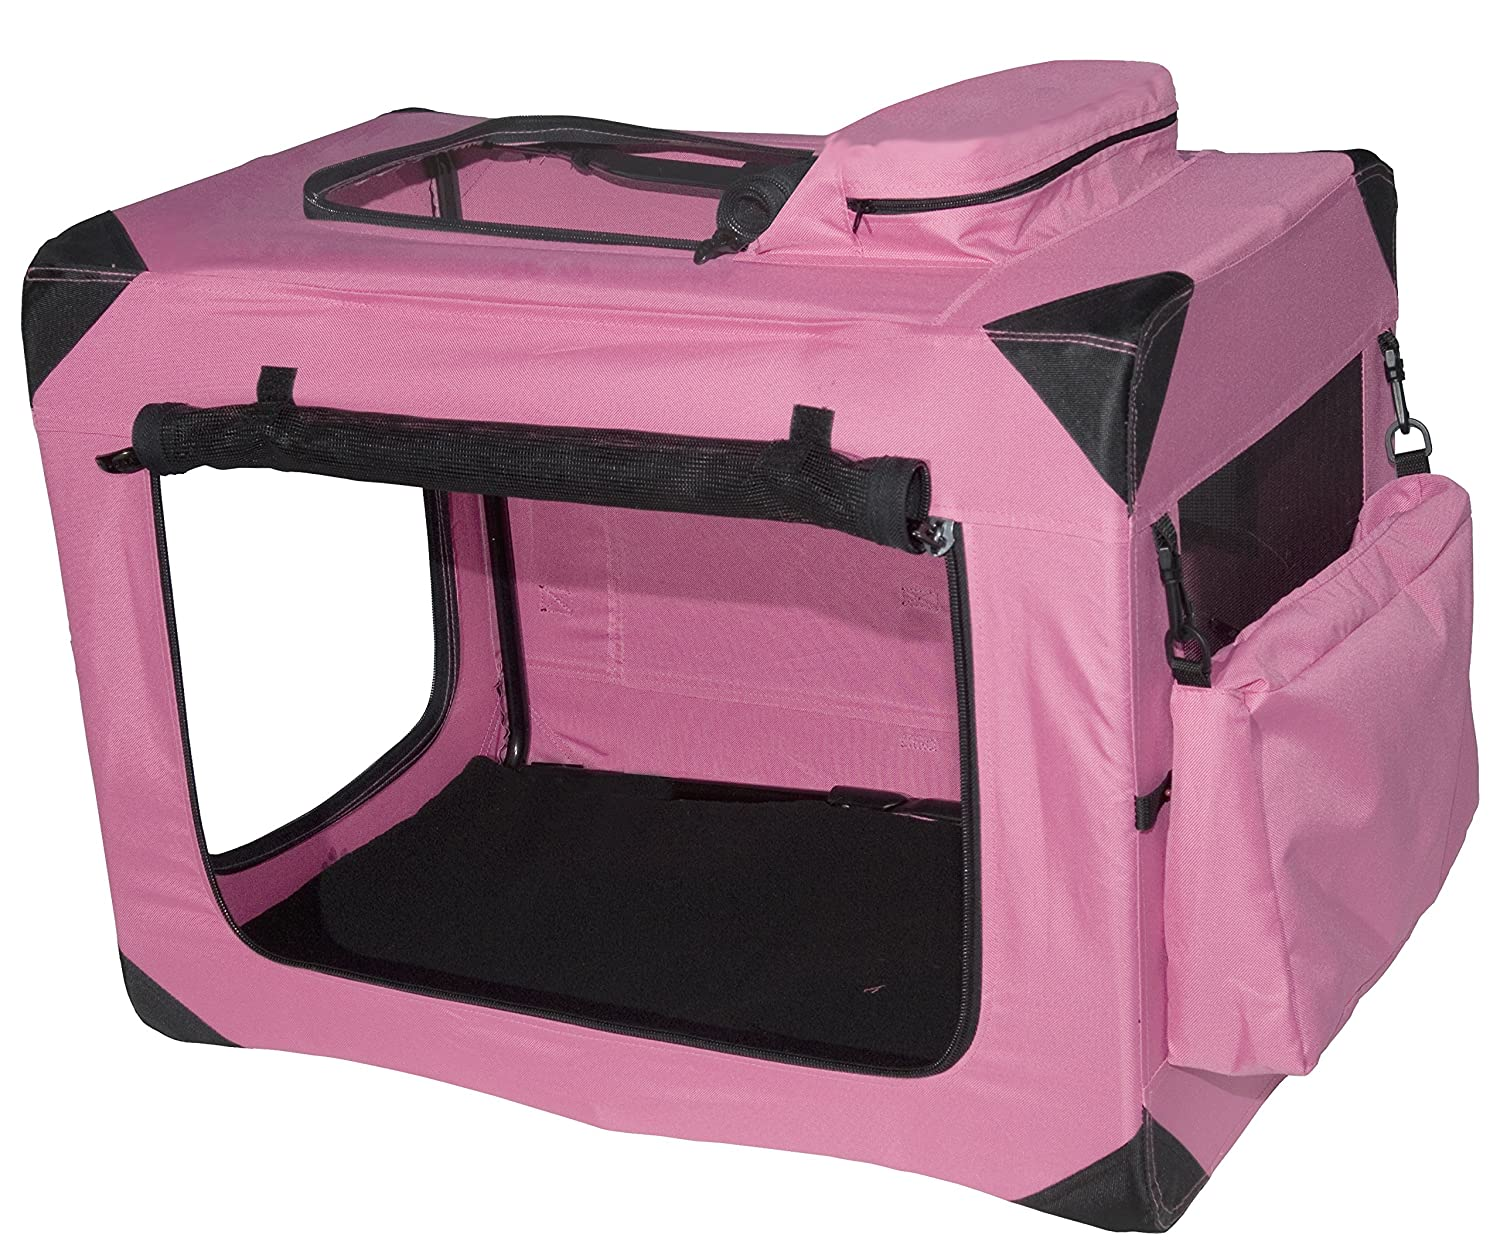 Amazon : Pet Gear Generation Ii Deluxe Portable Soft Crate For Cats And  Dogs Up To 30pounds, Pink : Pet Kennels : Pet Supplies